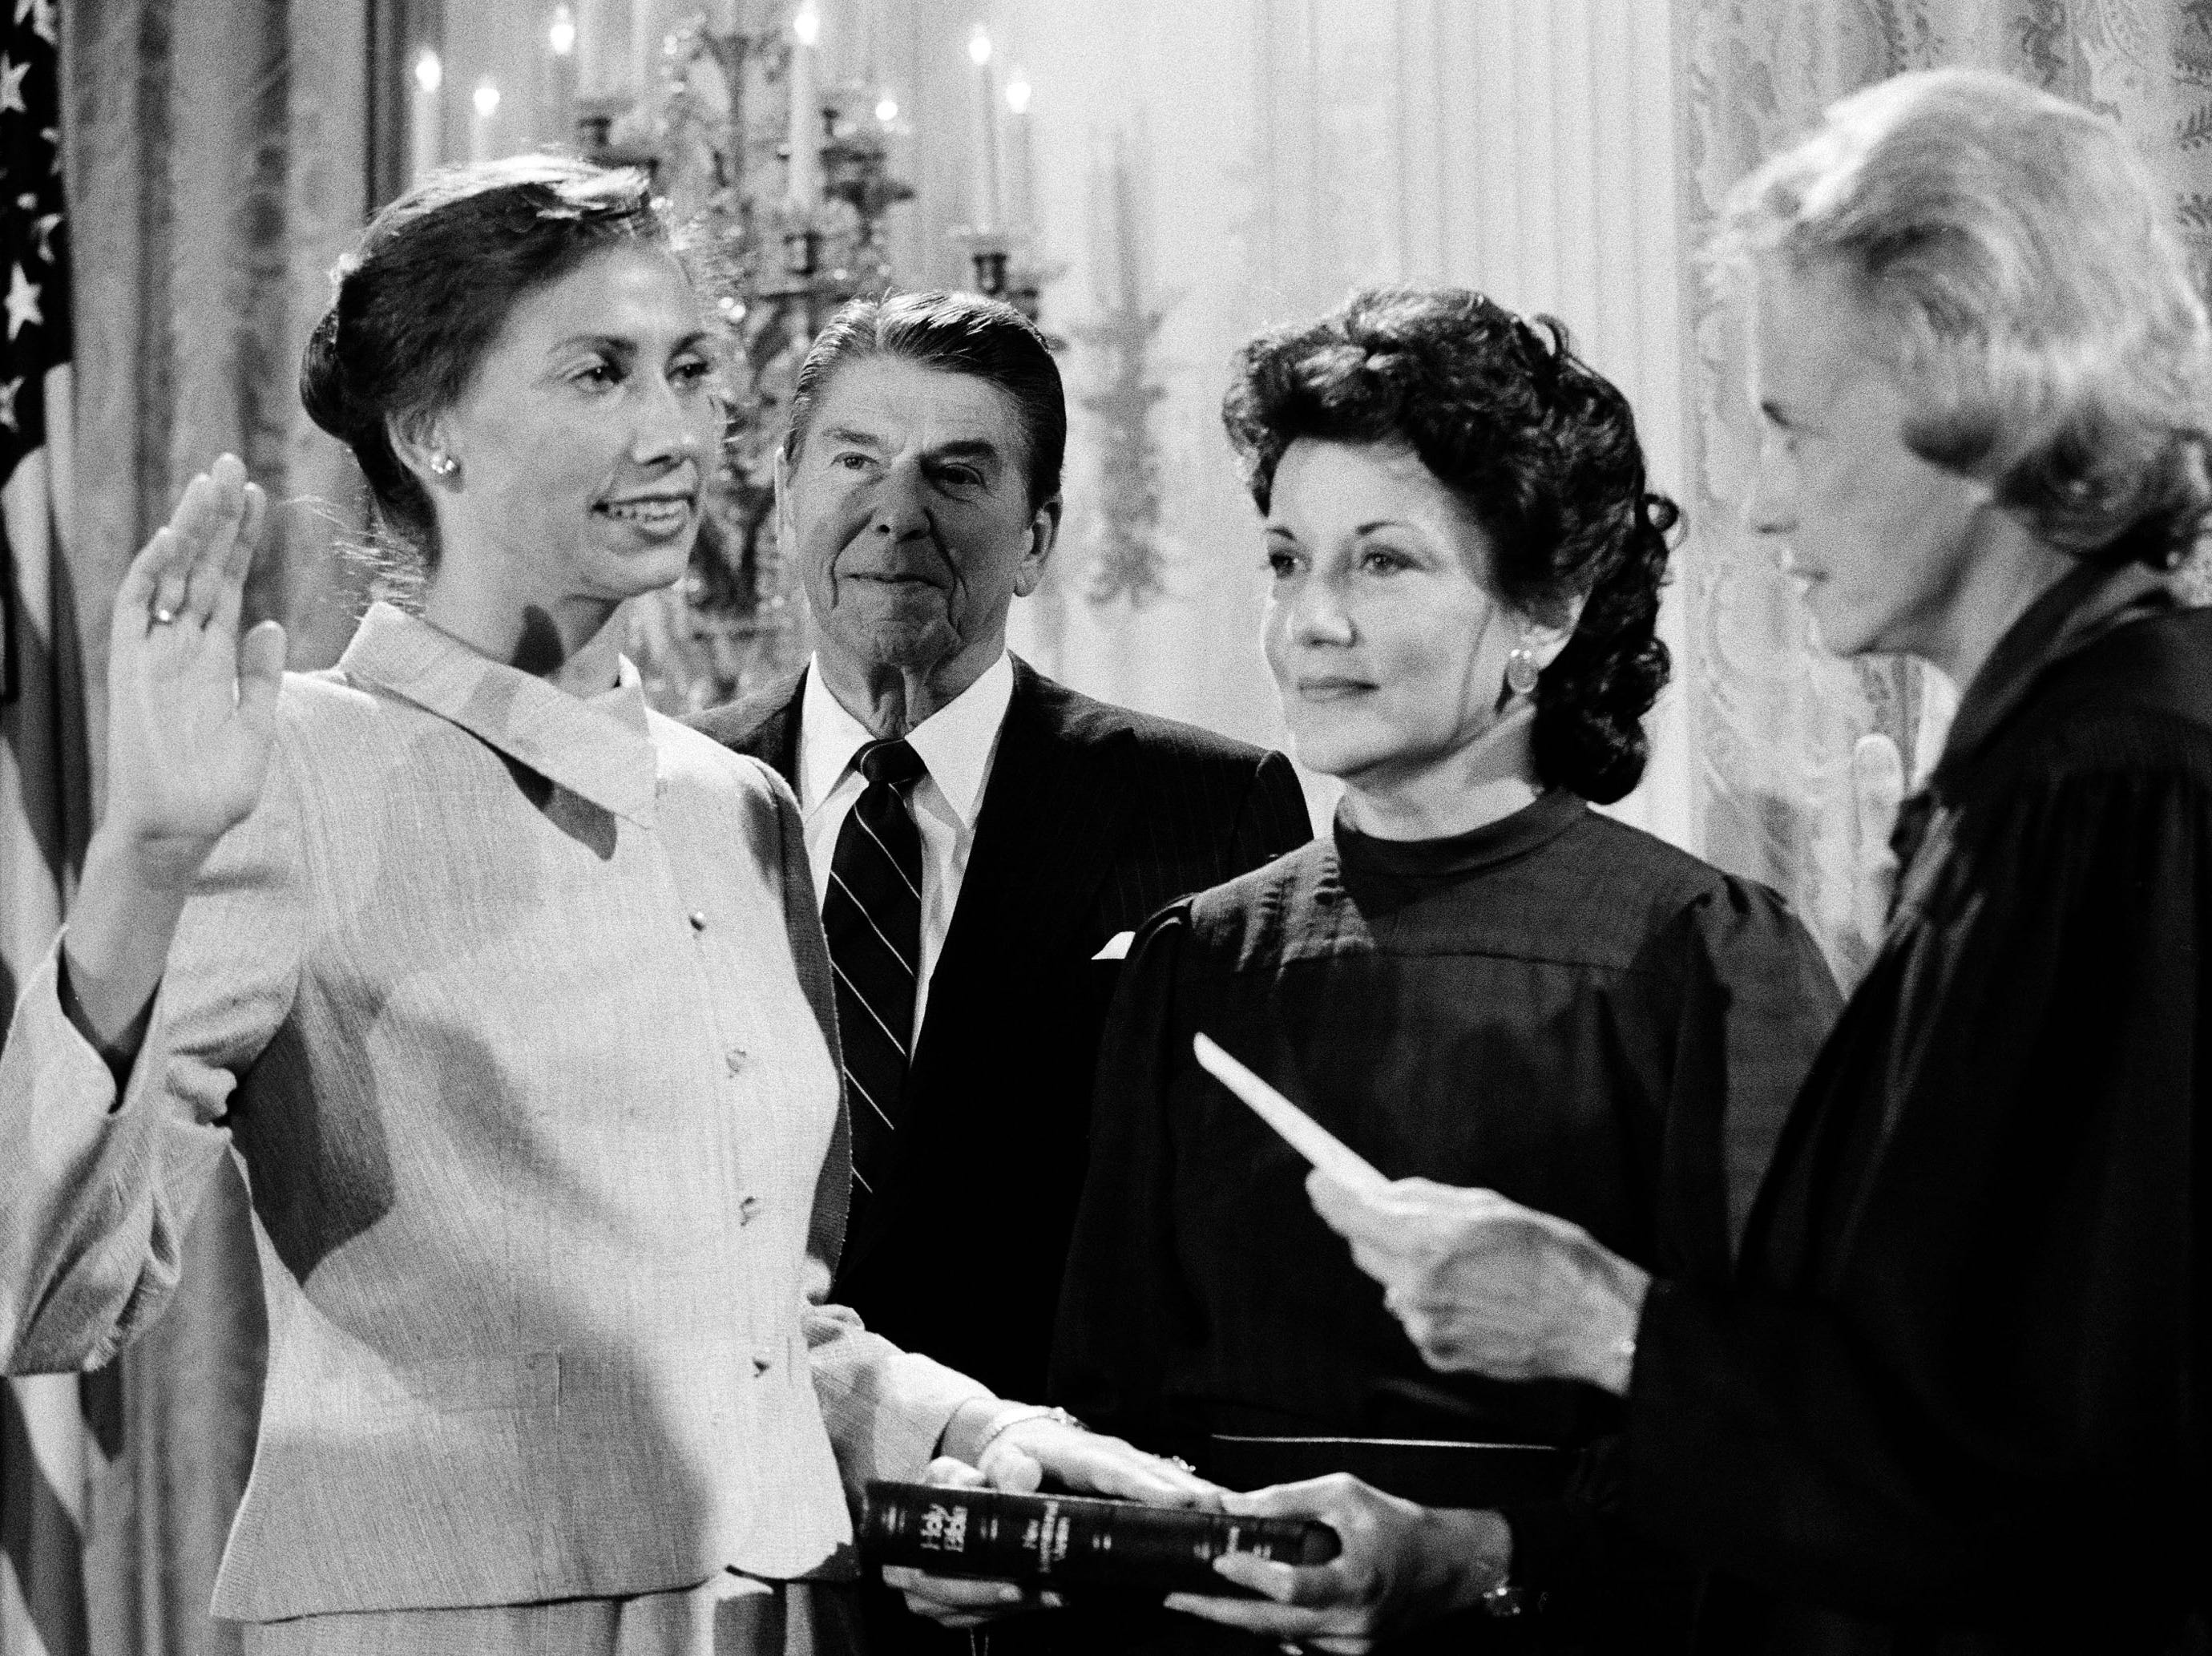 President Ronald Reagan watches as Supreme Court Justice Sandra Day O'Connor, right, swears in Barbara McConnell, left, as a member of the Civil Aeronautics Board at the White House, Sept. 23, 1983.  Transportation Secretary Elizabeth Dole holds the bible as McConnell is sworn in.